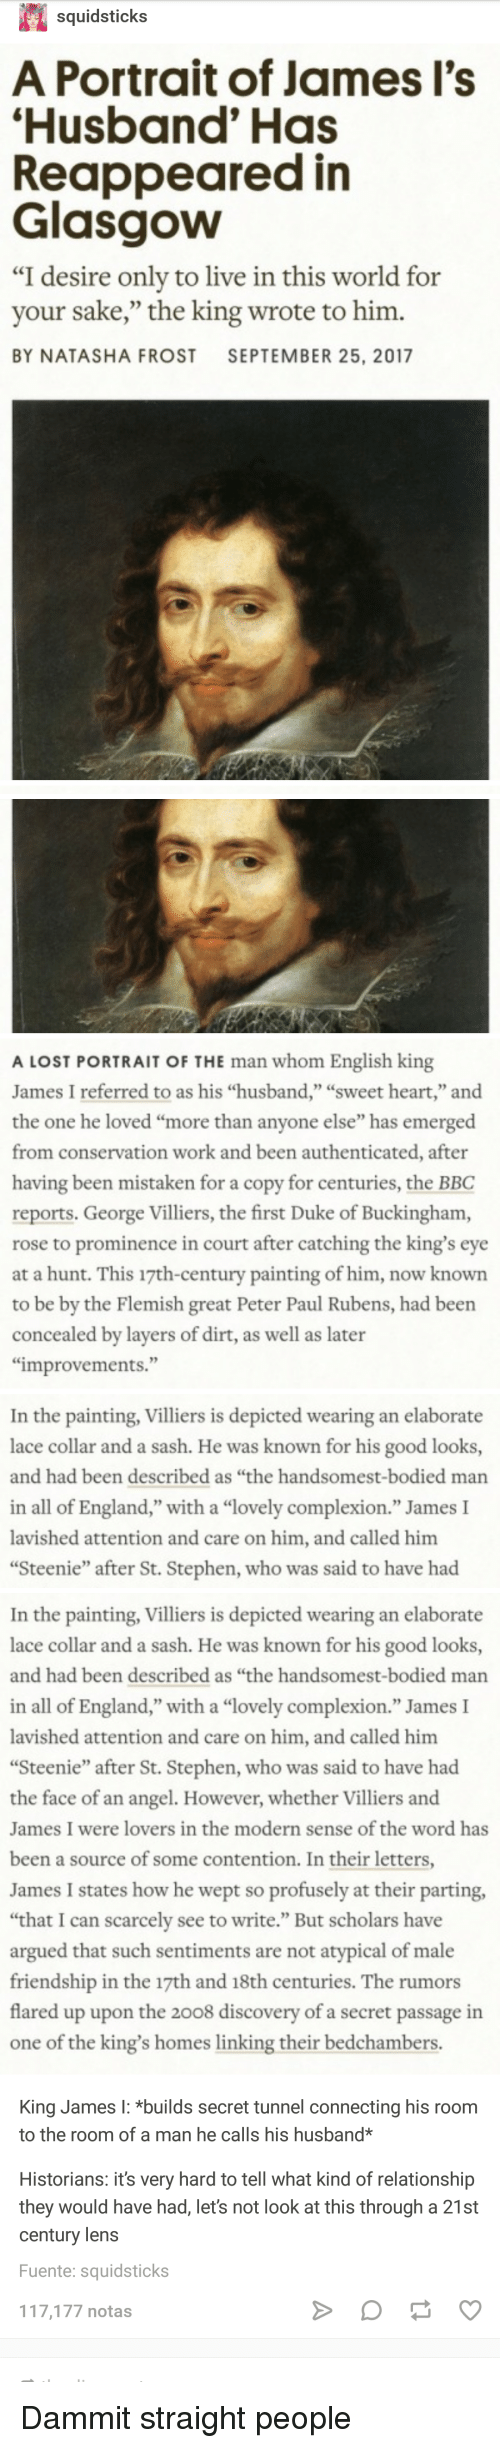 """Bodied: squidsticks  A Portrait of James l's  Husband' Has  Reappeared in  Glasgow  """"I desire only to live in this world for  your sake,"""" the king wrote to him.  BY NATASHA FROST SEPTEMBER 25, 2017  0)   A LOST PORTRAIT OF THE man whom English king  James I referred to as his """"husband,"""" """"sweet heart,"""" and  the one he loved """"more than anyone else"""" has emerged  from conservation work and been authenticated, after  having been mistaken for a copy for centuries, the BBC  reports, George Villiers, the first Duke of Buckingham,  rose to prominence in court after catching the king's eye  at a hunt. This 17th-century painting of him, now known  to be by the Flemish great Peter Paul Rubens, had been  concealed by layers of dirt, as well as later  improvements.""""  In the painting, Villiers is depicted wearing an elaborate  lace collar and a sash. He was known for his good looks,  and had been described as """"the handsomest-bodied marn  in all of England,"""" with a """"lovely complexion."""" James I  lavished attention and care on him, and called him  Steenie"""" after St. Stephen, who was said to have had   In the painting, Villiers is depicted wearing an elaborate  lace collar and a sash. He was known for his good looks,  and had been described as """"the handsomest-bodied man  in all of England,"""" with a """"lovely complexion."""" James I  lavished attention and care on him, and called him  Steenie"""" after St. Stephen, who was said to have had  the face of an angel. However, whether Villiers and  James I were lovers in the modern sense of the word has  been a source of some contention. In their letters  James I states how he wept so profusely at their parting,  """"that I can scarcely see to write."""" But scholars have  argued that such sentiments are not atypical of male  friendship in the 17th and 18th centuries. The rumors  flared up upon the 2008 discovery of a secret passage in  one of the king's homes linking their bedchambers  King James I: *builds secret tunnel connecting his room  to the room o"""